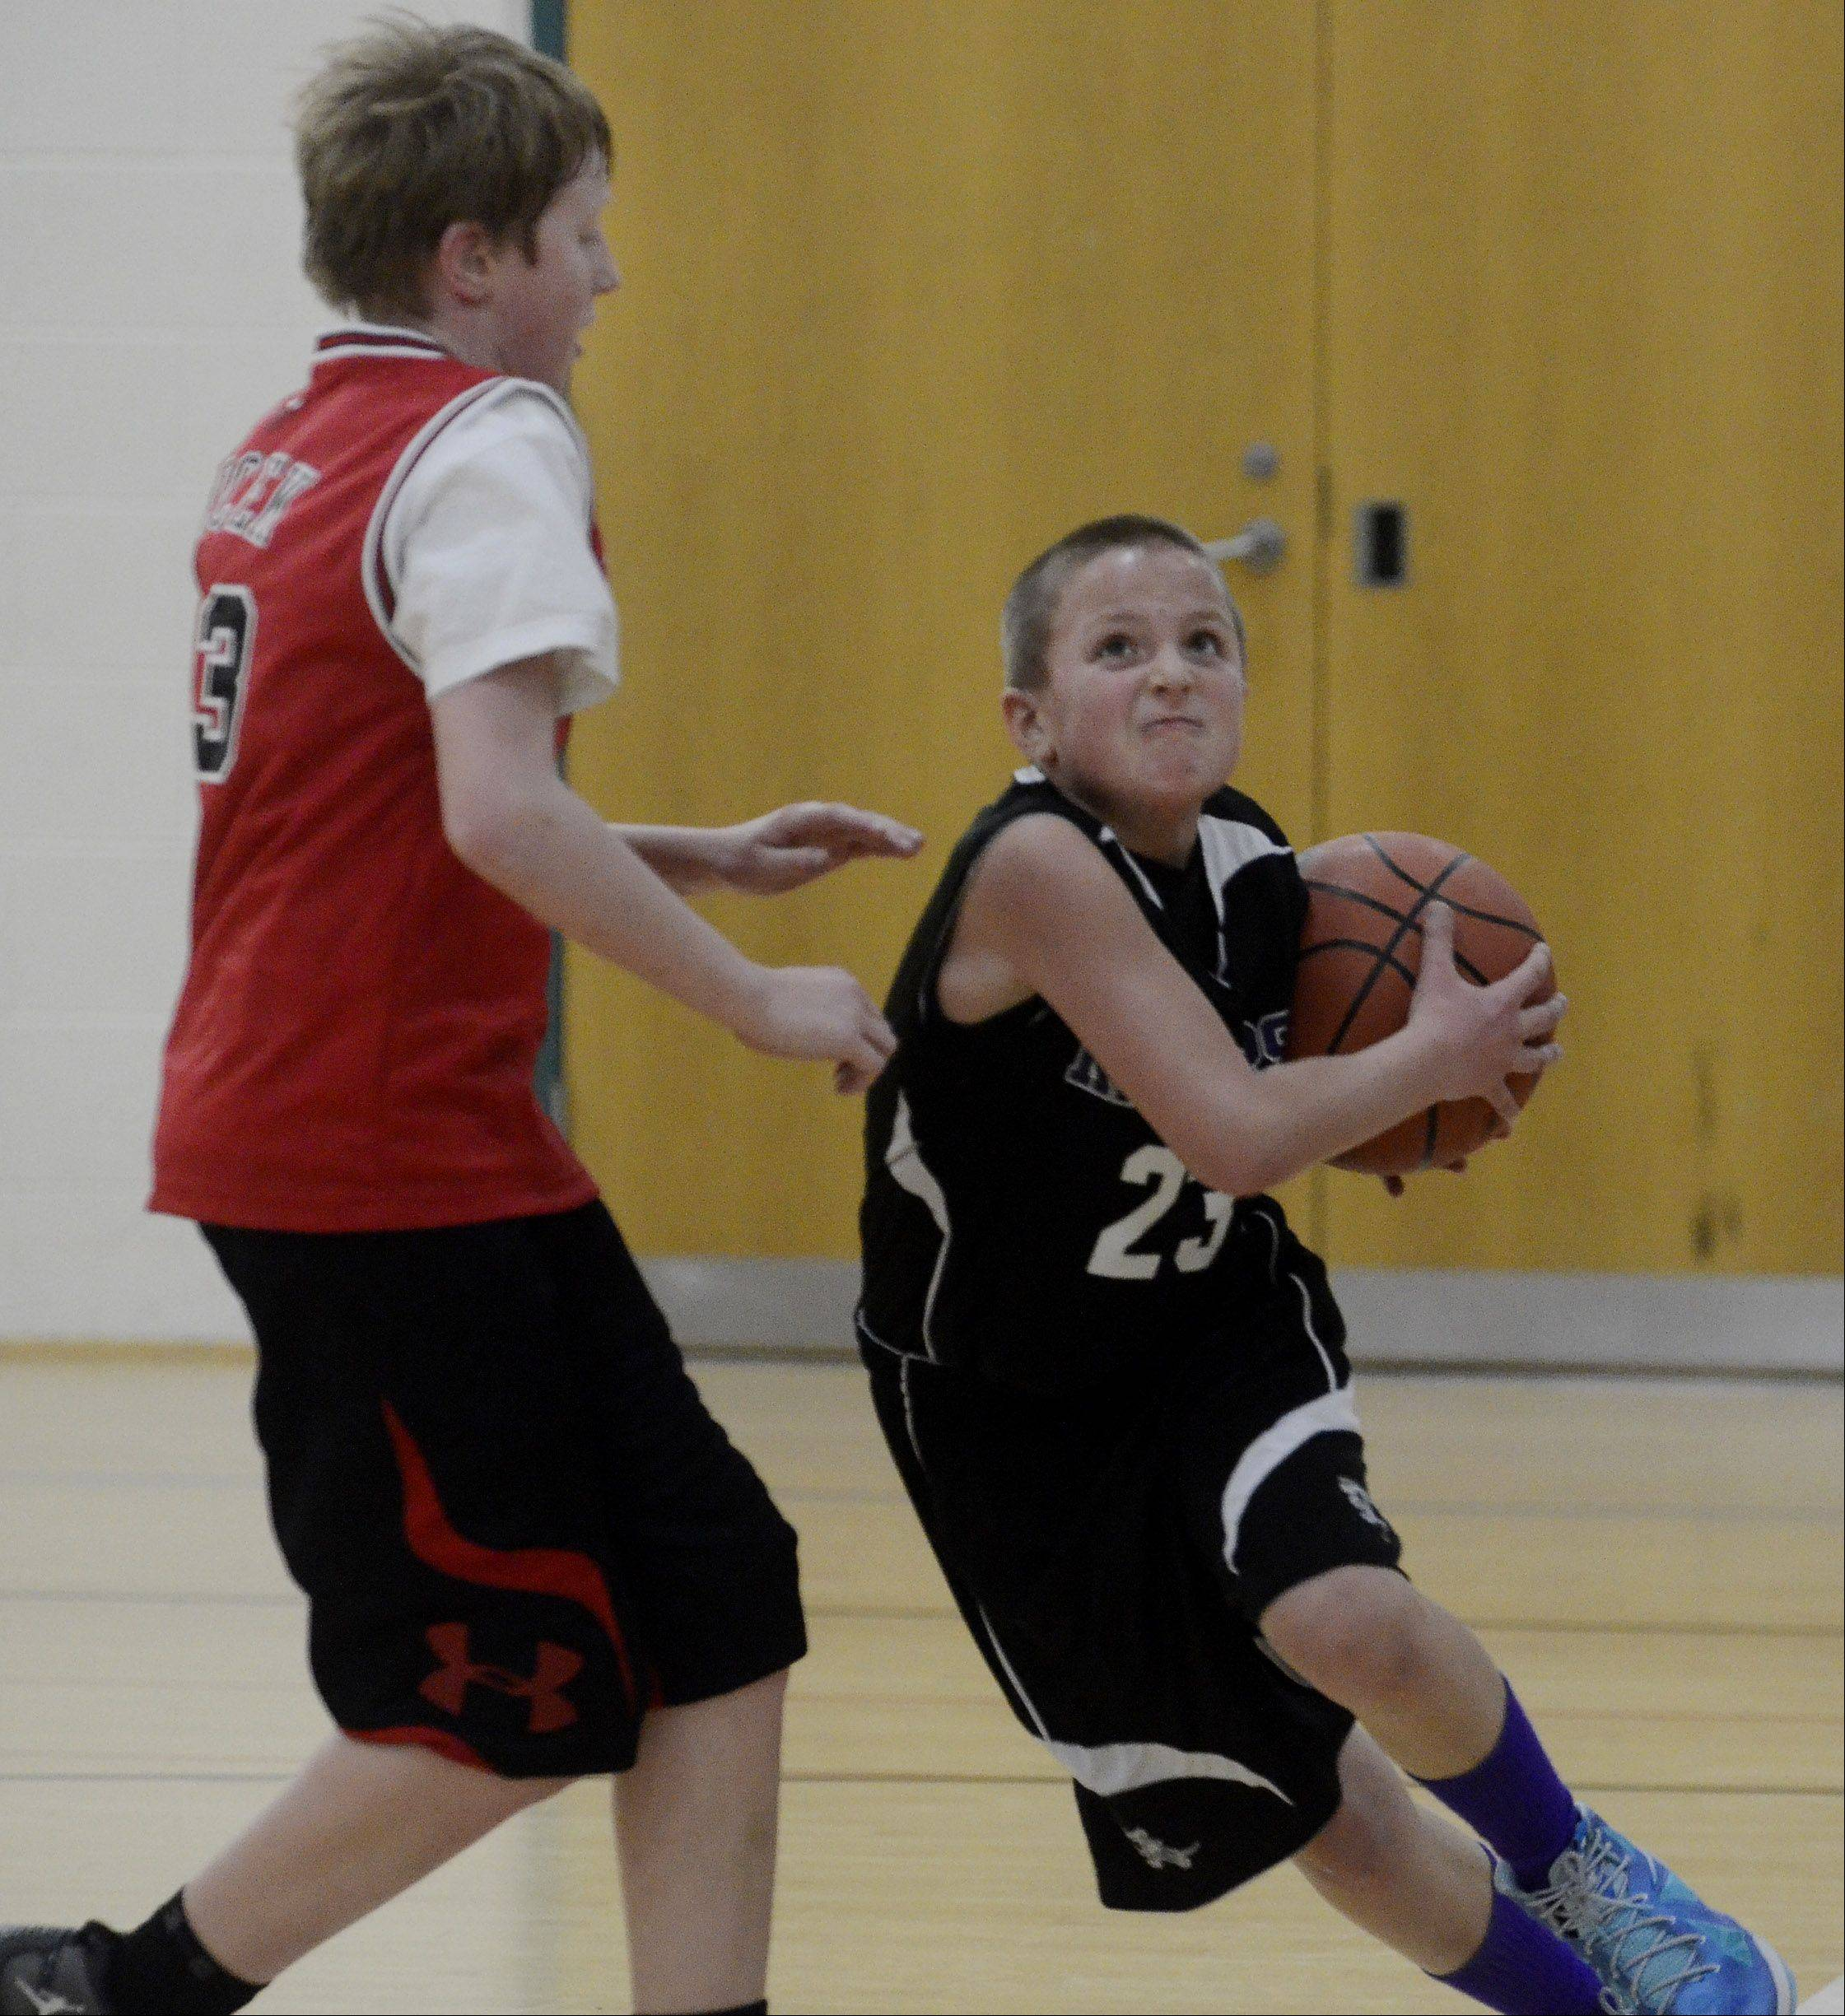 Joey Czaja, right, drives on Robert Nocek during a 10-11-year-olds Youth 3v3 Basketball Tournament game at the Clauss Recreation Center in Roselle.